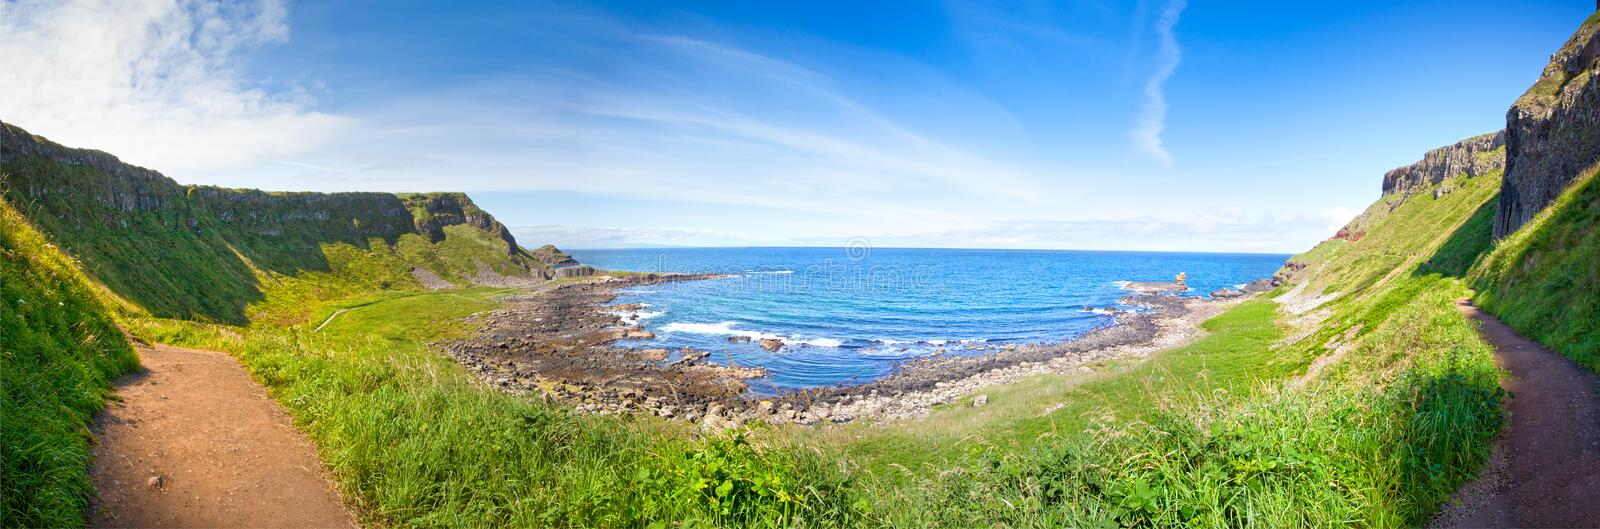 Scenic Footpath. Giant's Causeway. royalty free stock image